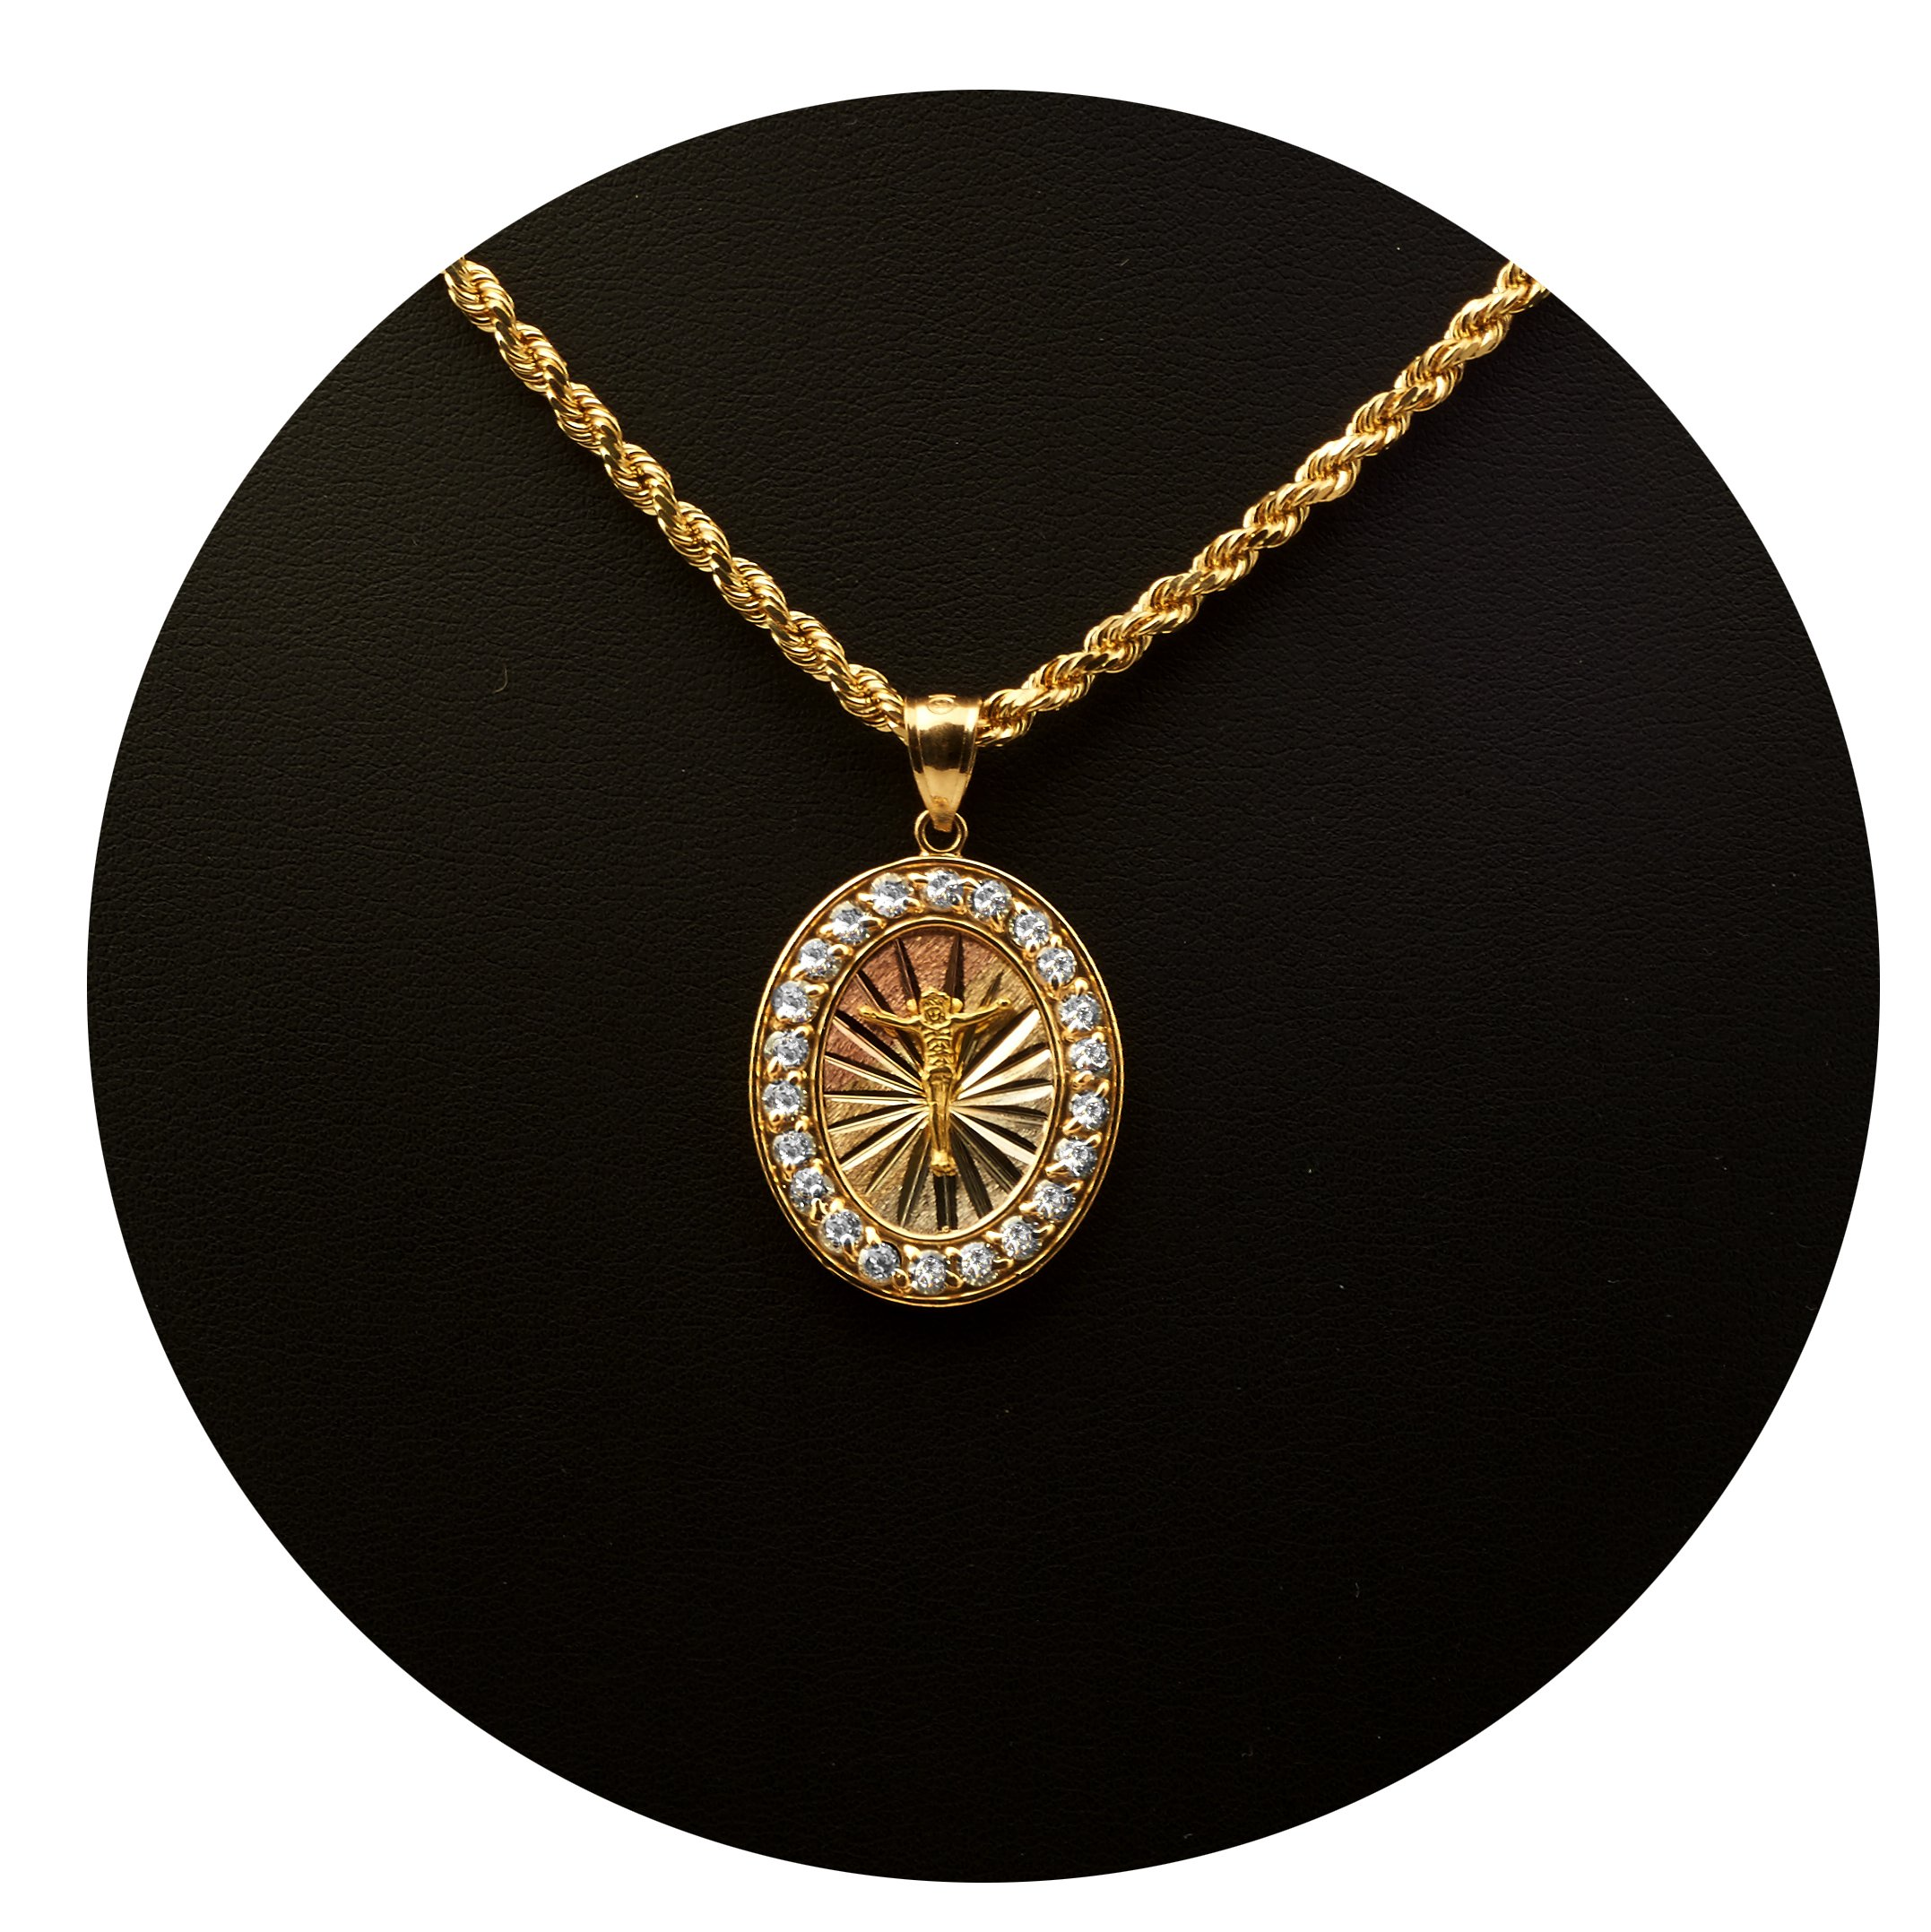 LoveBling 10K Yellow Gold Tri Color Jesus Cross Medallion Charm Pendent with 22 CZ Stones (1.38'' x 0.83)